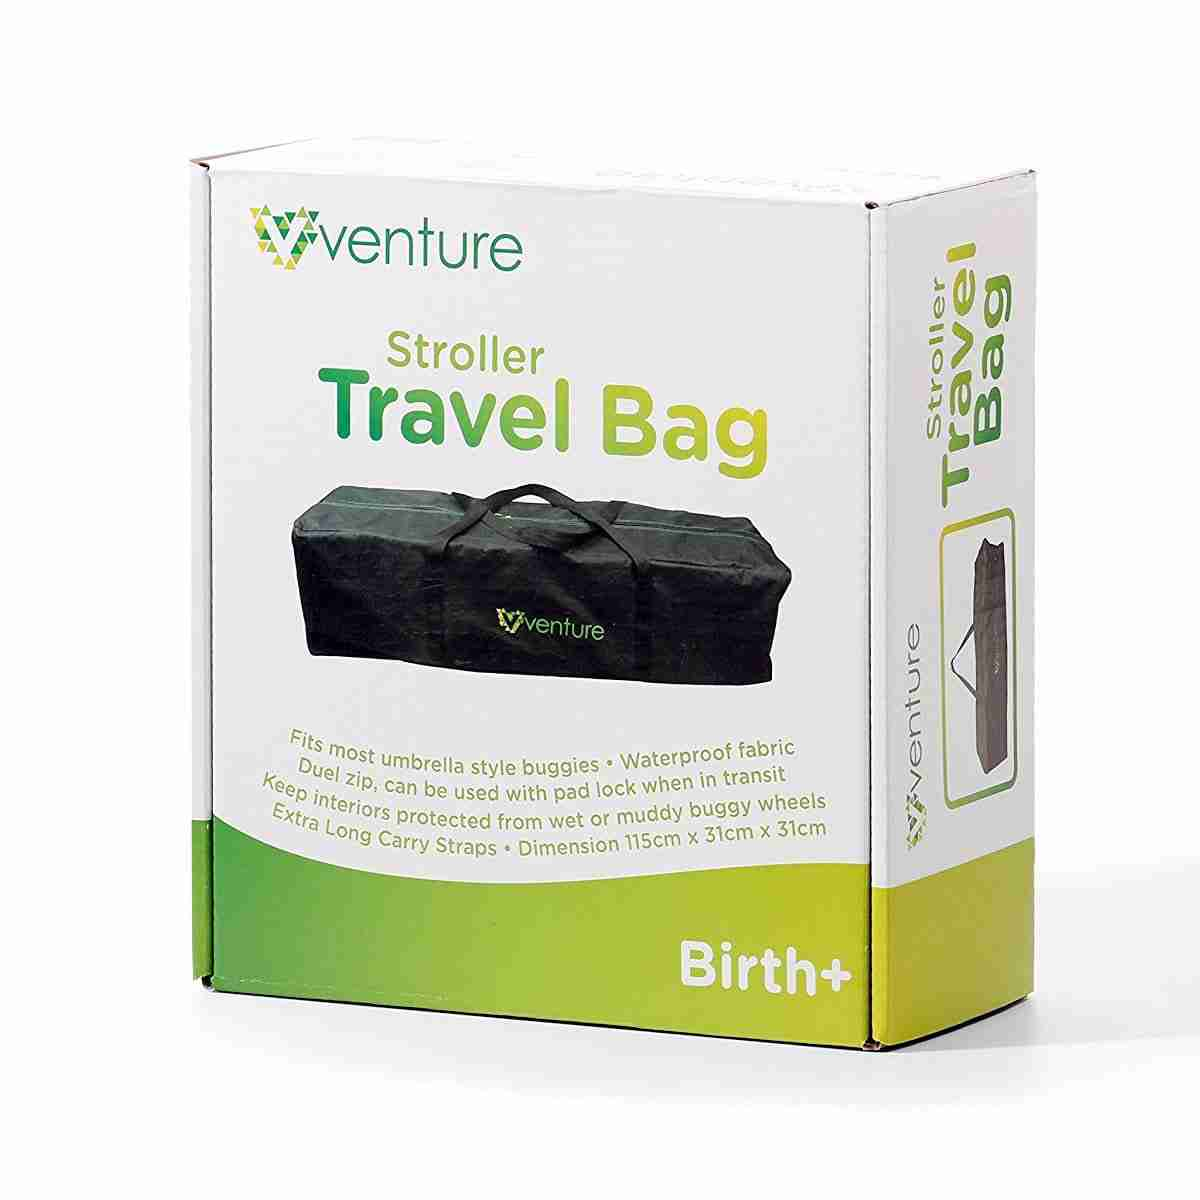 Venture Stroller Travel Bag